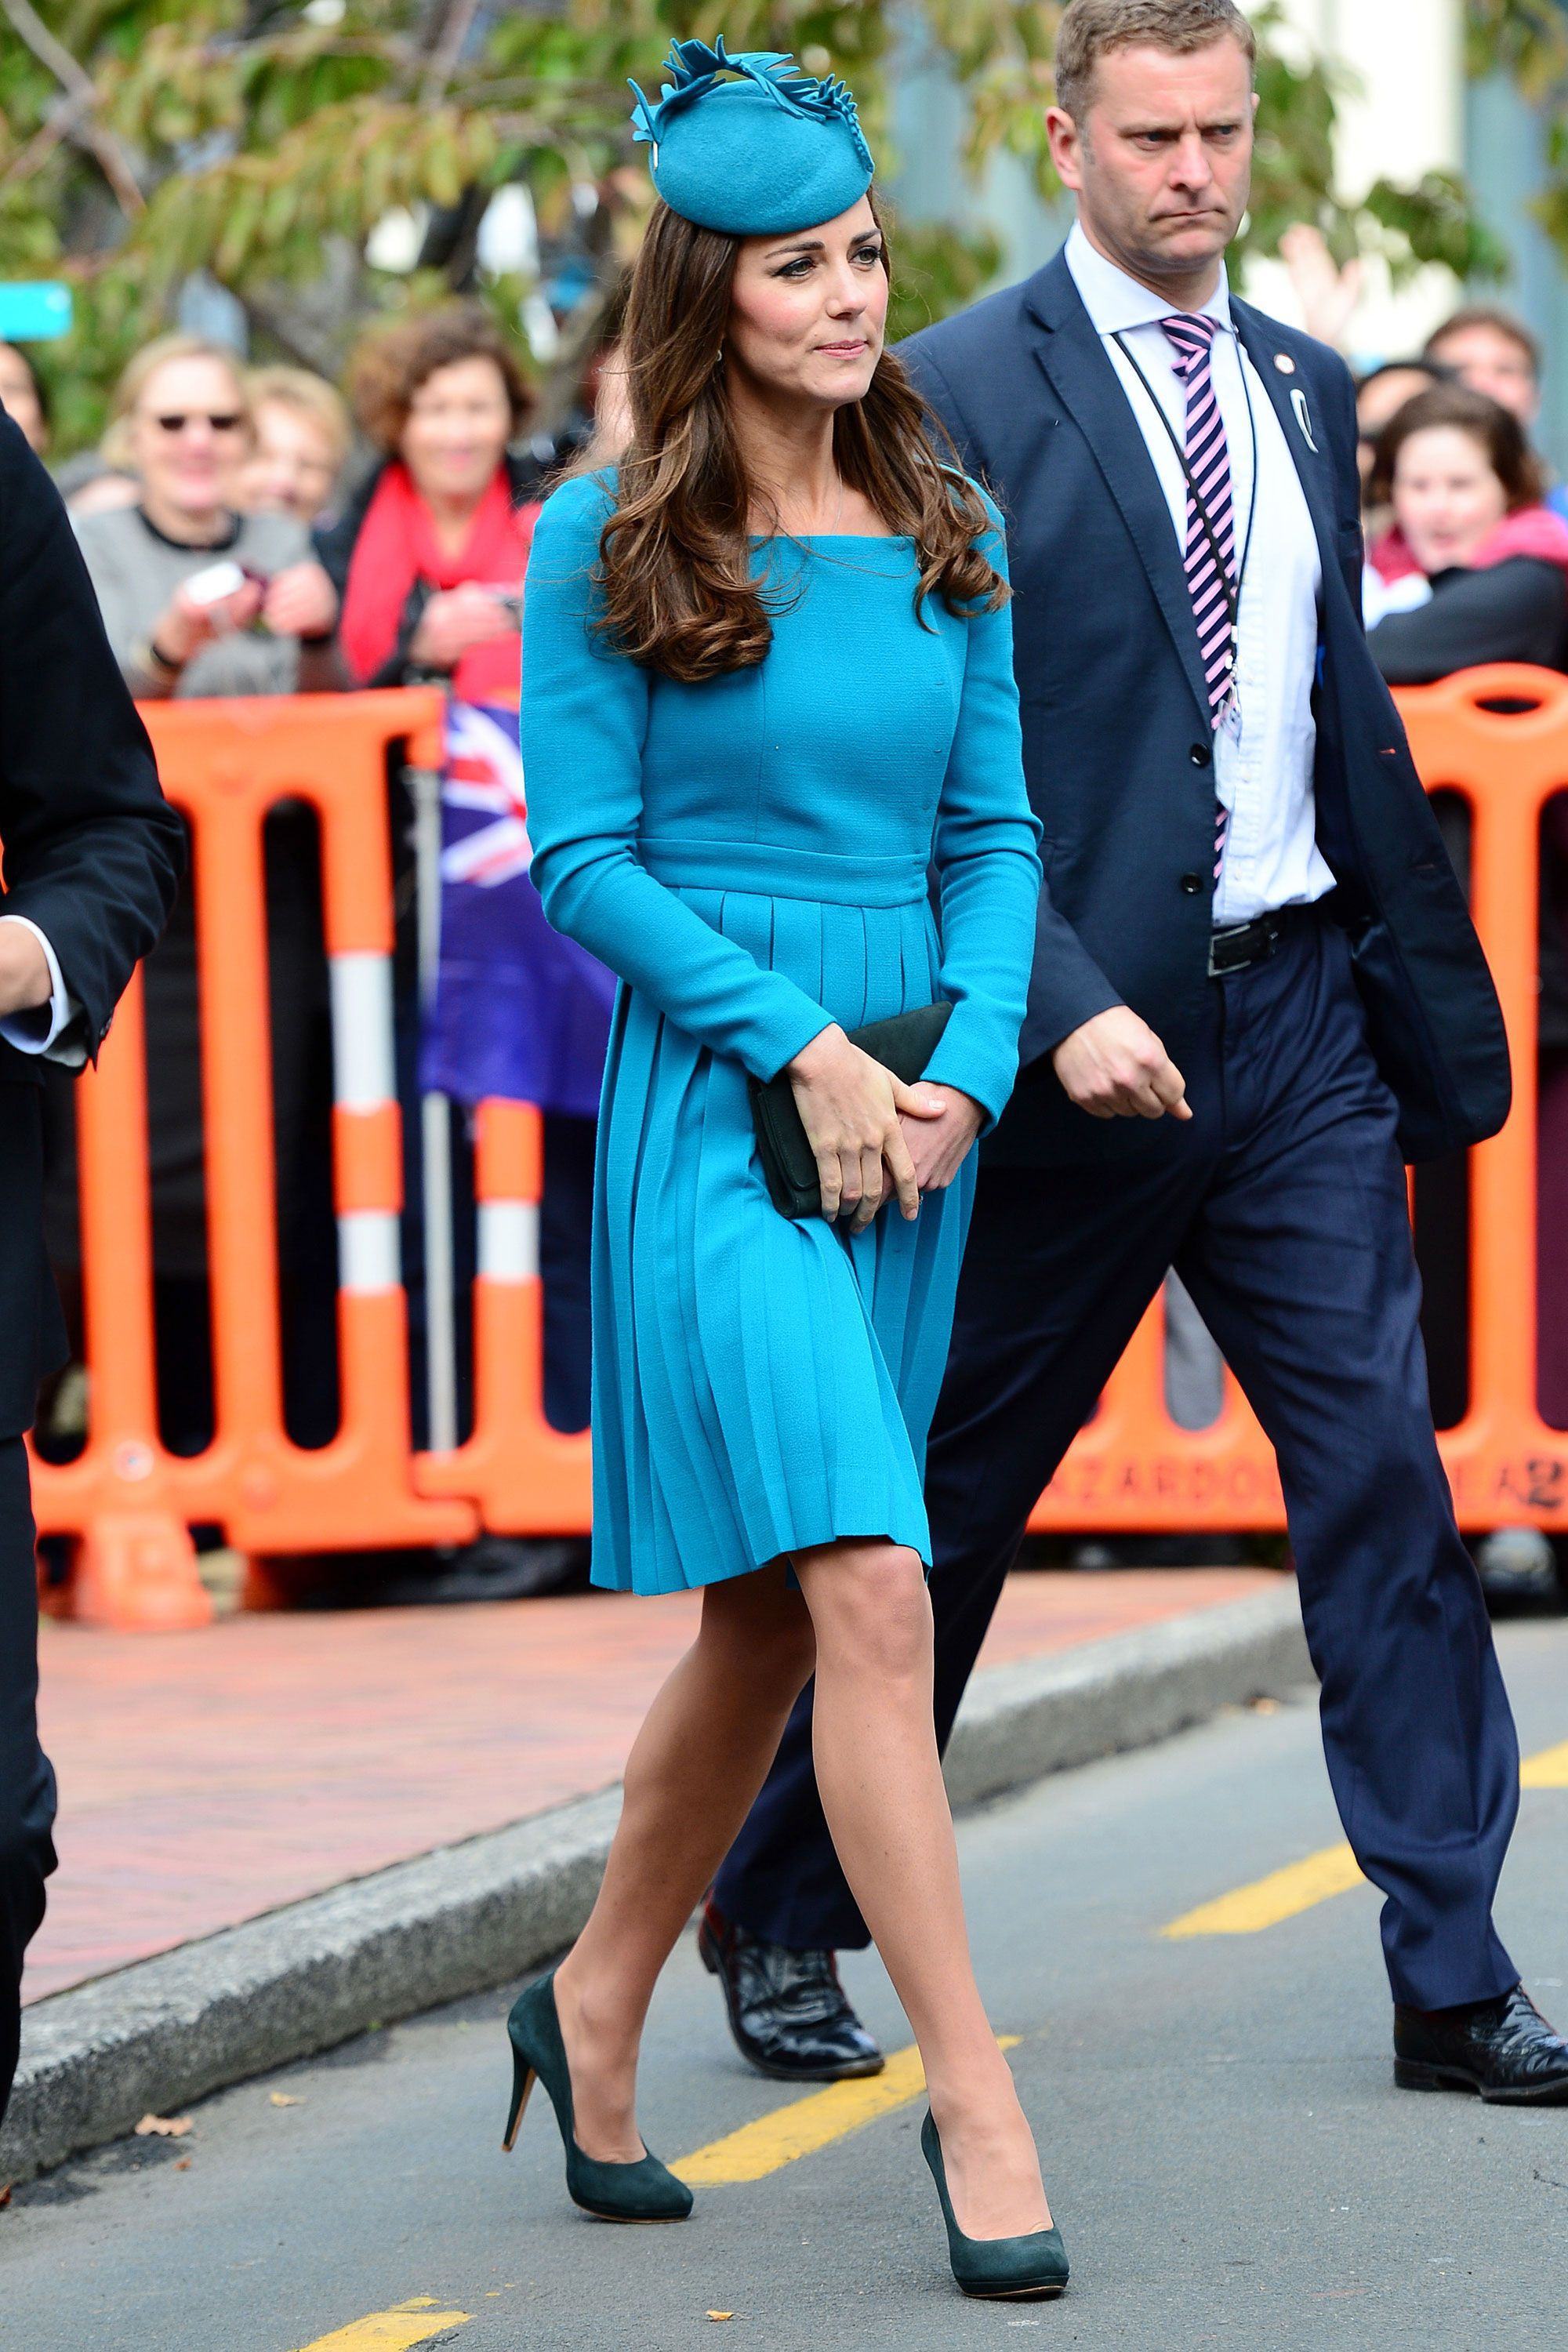 657b18fb2432 Duchess of Cambridge Australia Tour - Duchess of Cambridge Australia New  Zealand Style